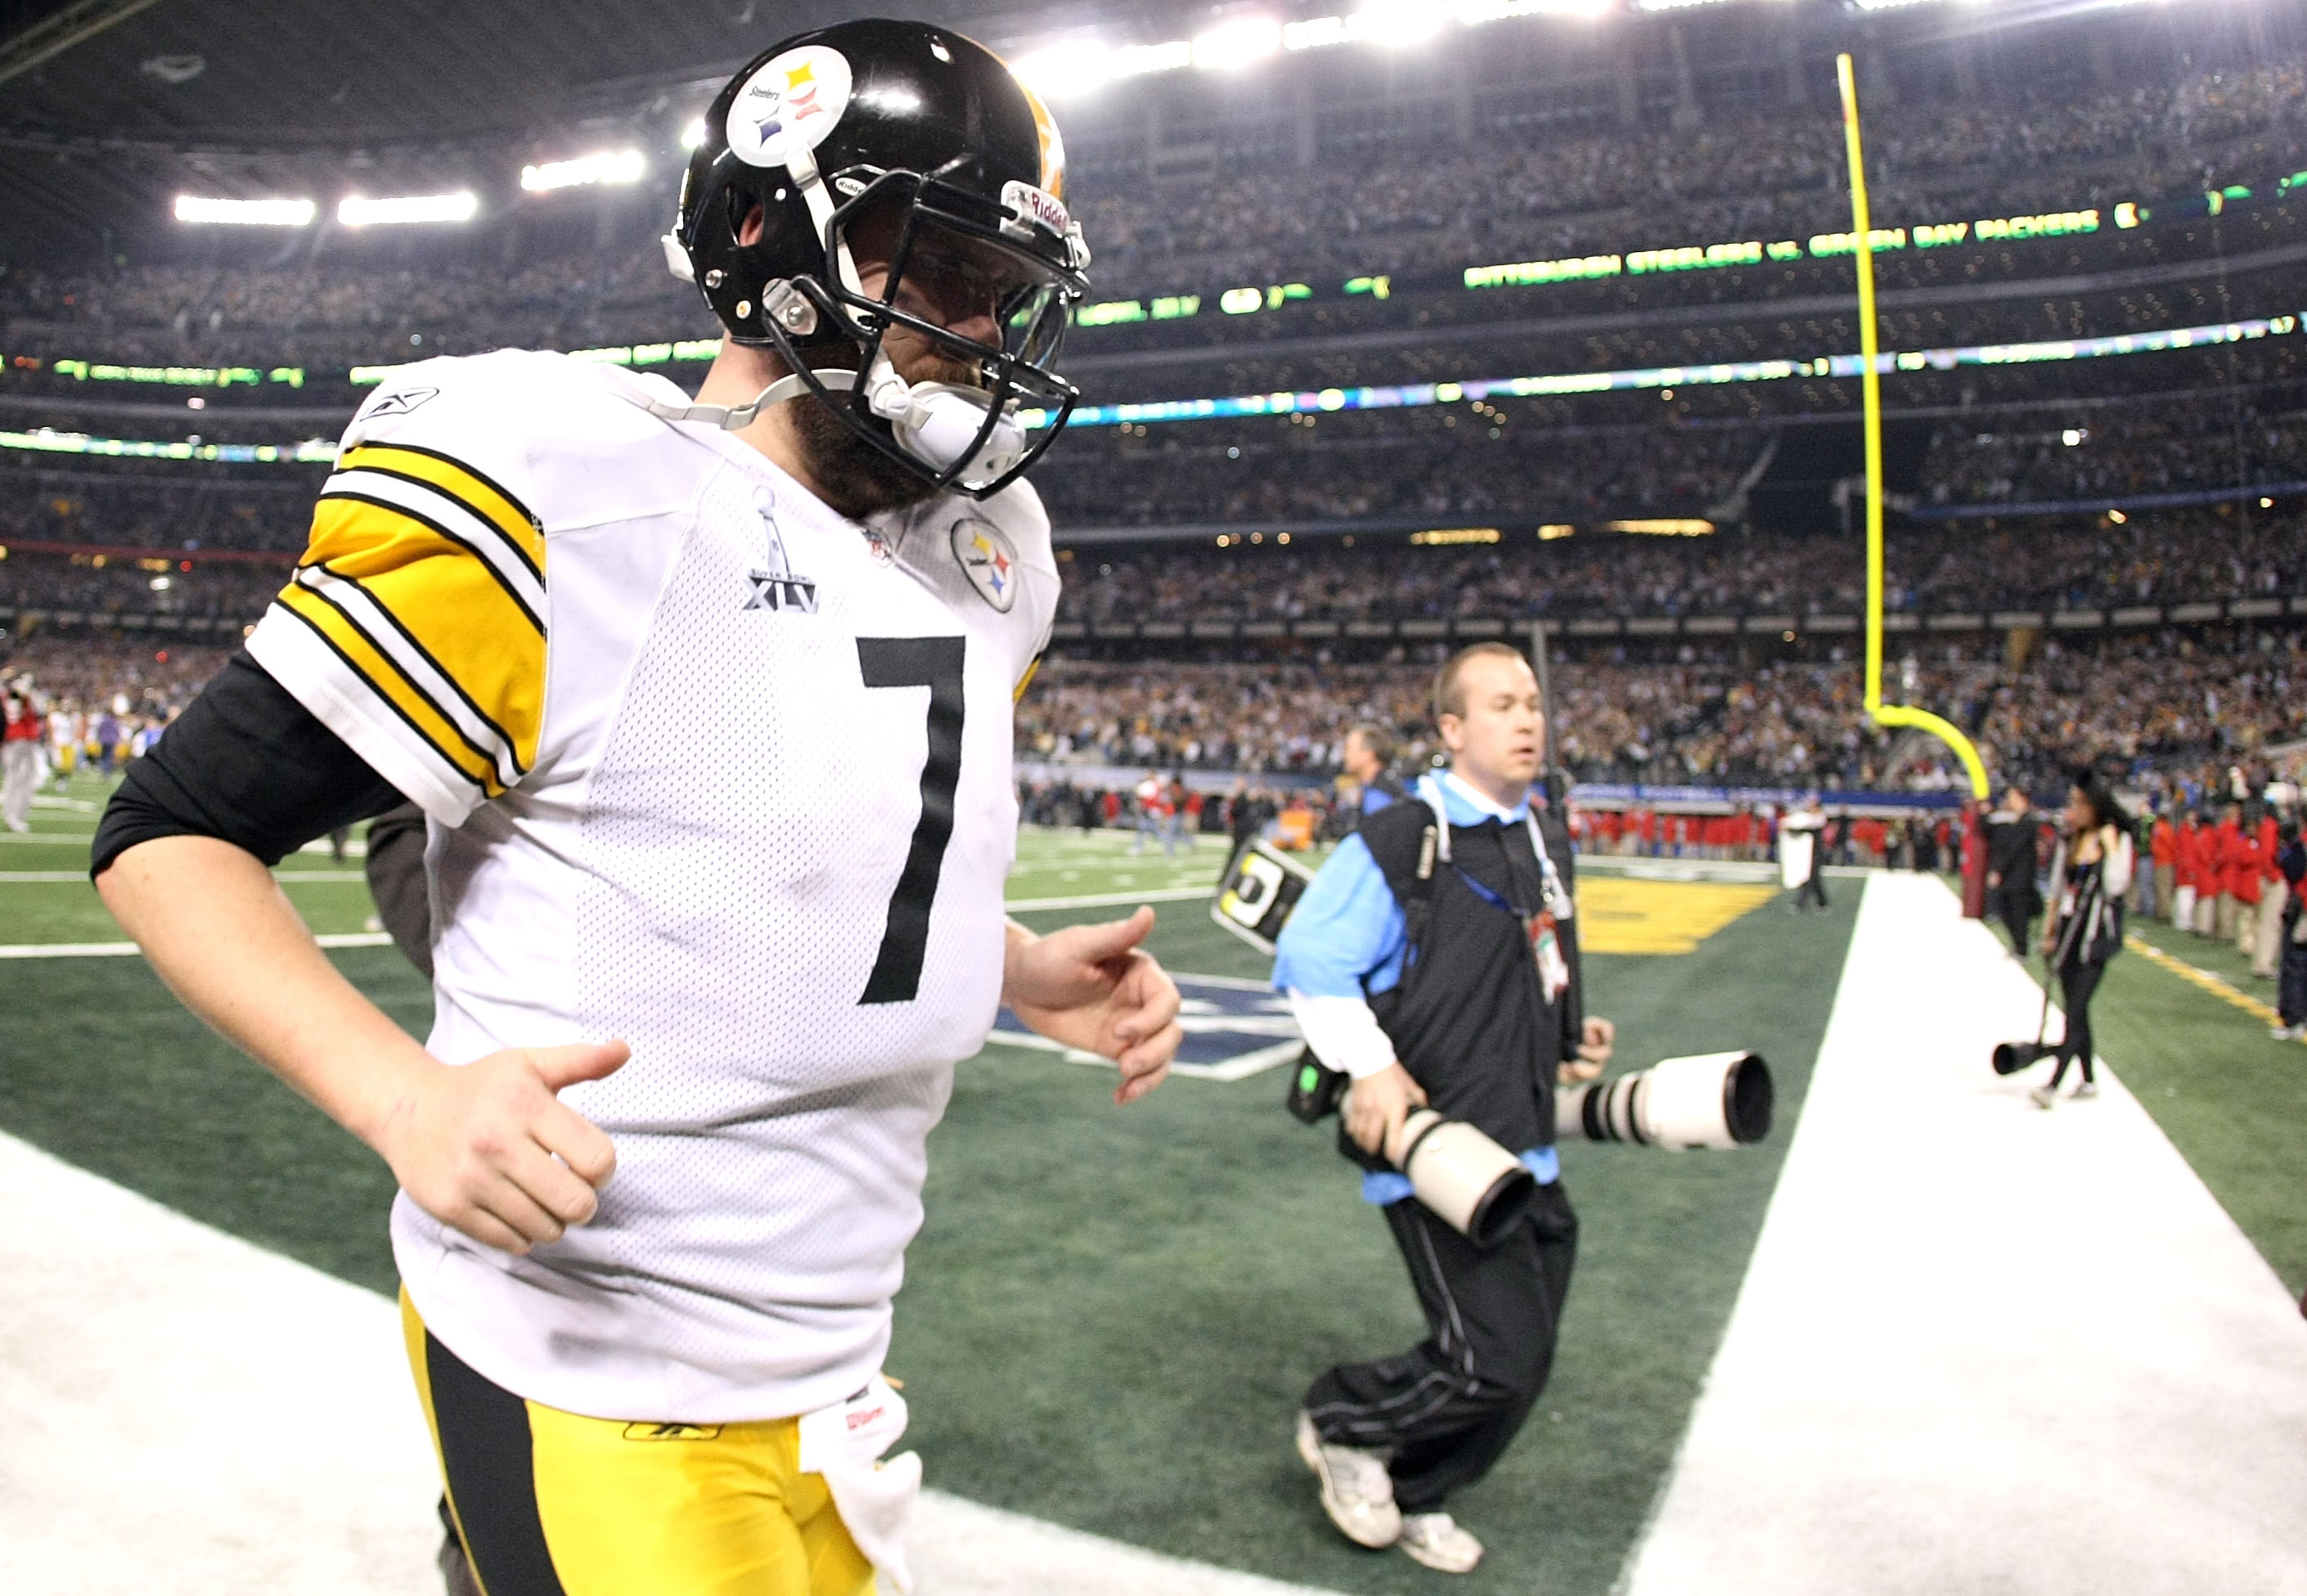 ARLINGTON, TX - FEBRUARY 06:  Ben Roethlisberger #7 of the Pittsburgh Steelers walks off the field after losing to the Green Bay Packers during Super Bowl XLV at Cowboys Stadium on February 6, 2011 in Arlington, Texas.  (Photo by Doug Pensinger/Getty Imag